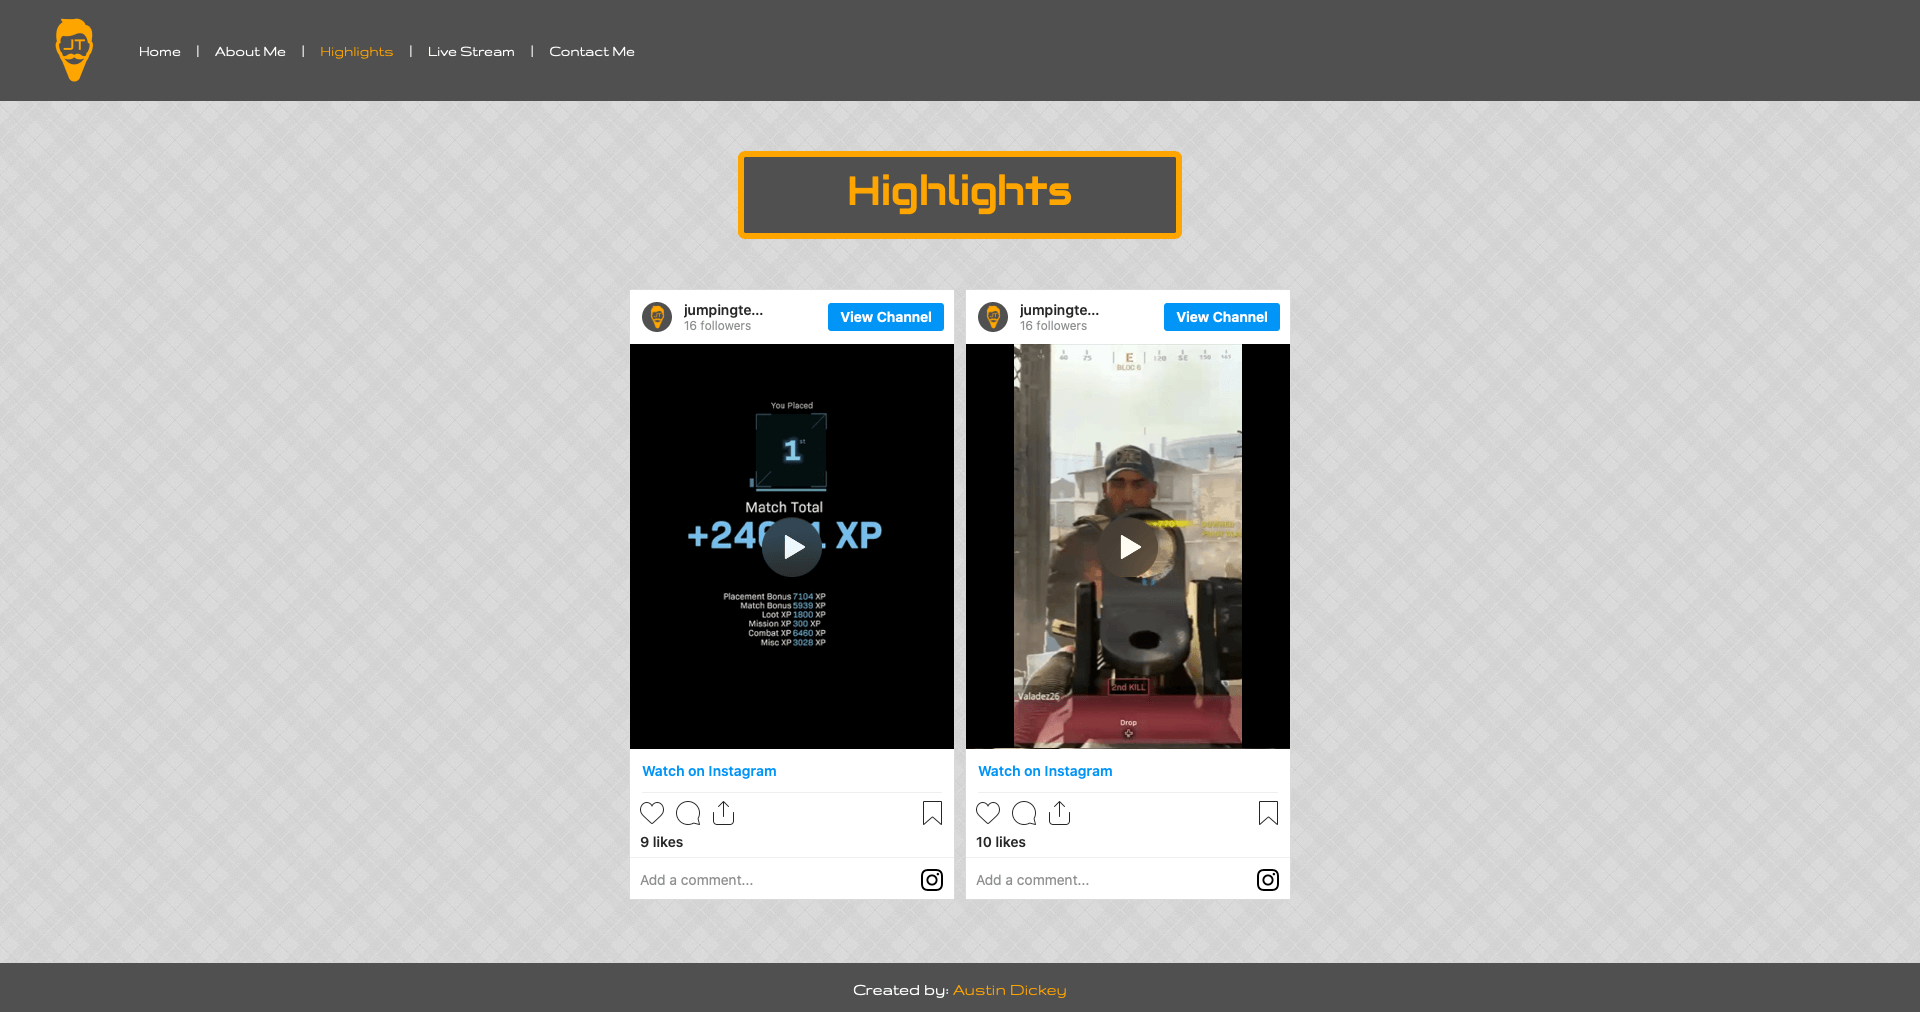 Highlights Page